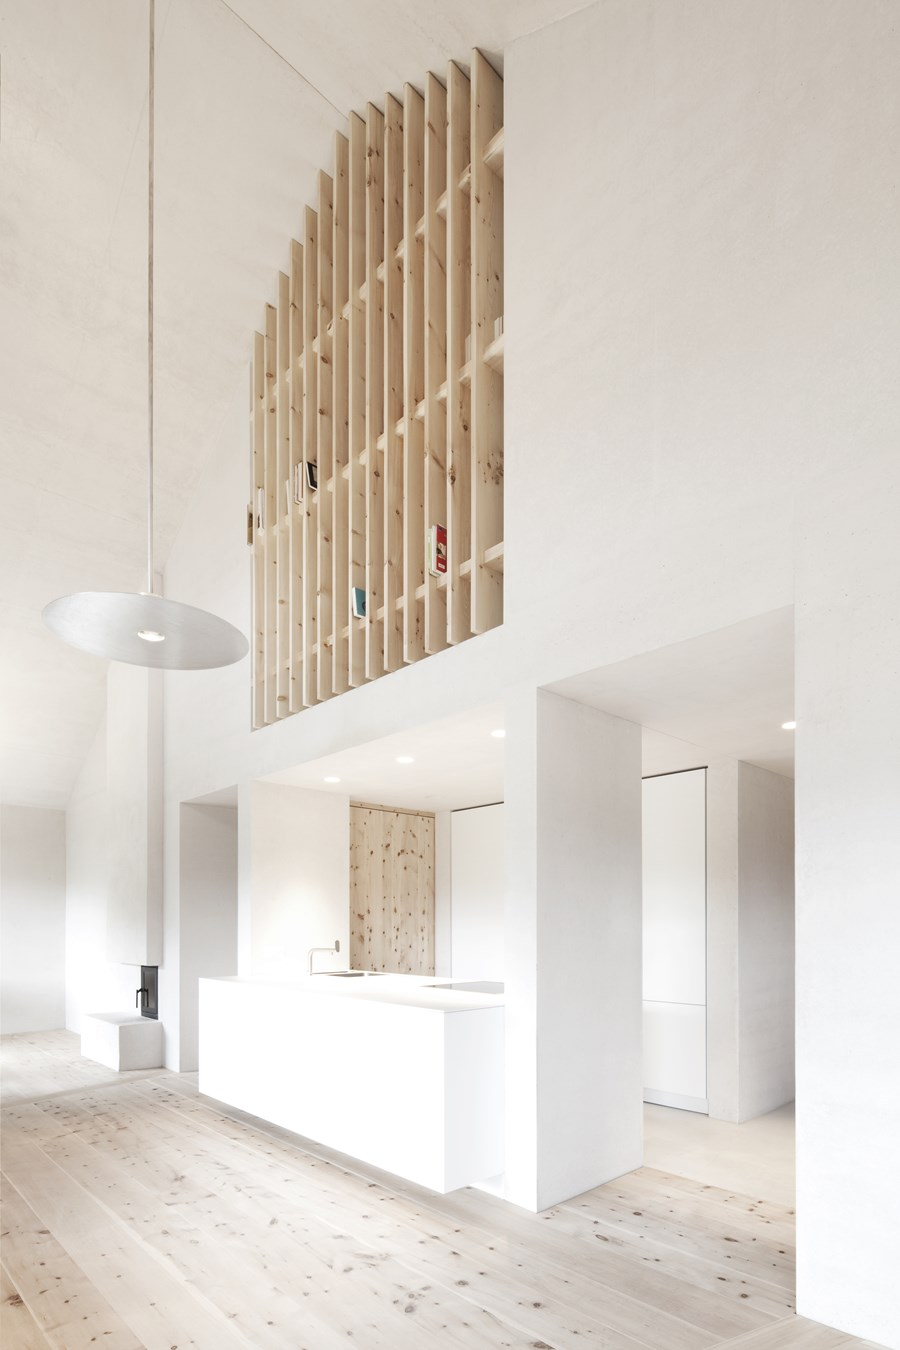 Wohnhaus Pliscia 13 by Pedevilla Architects 10